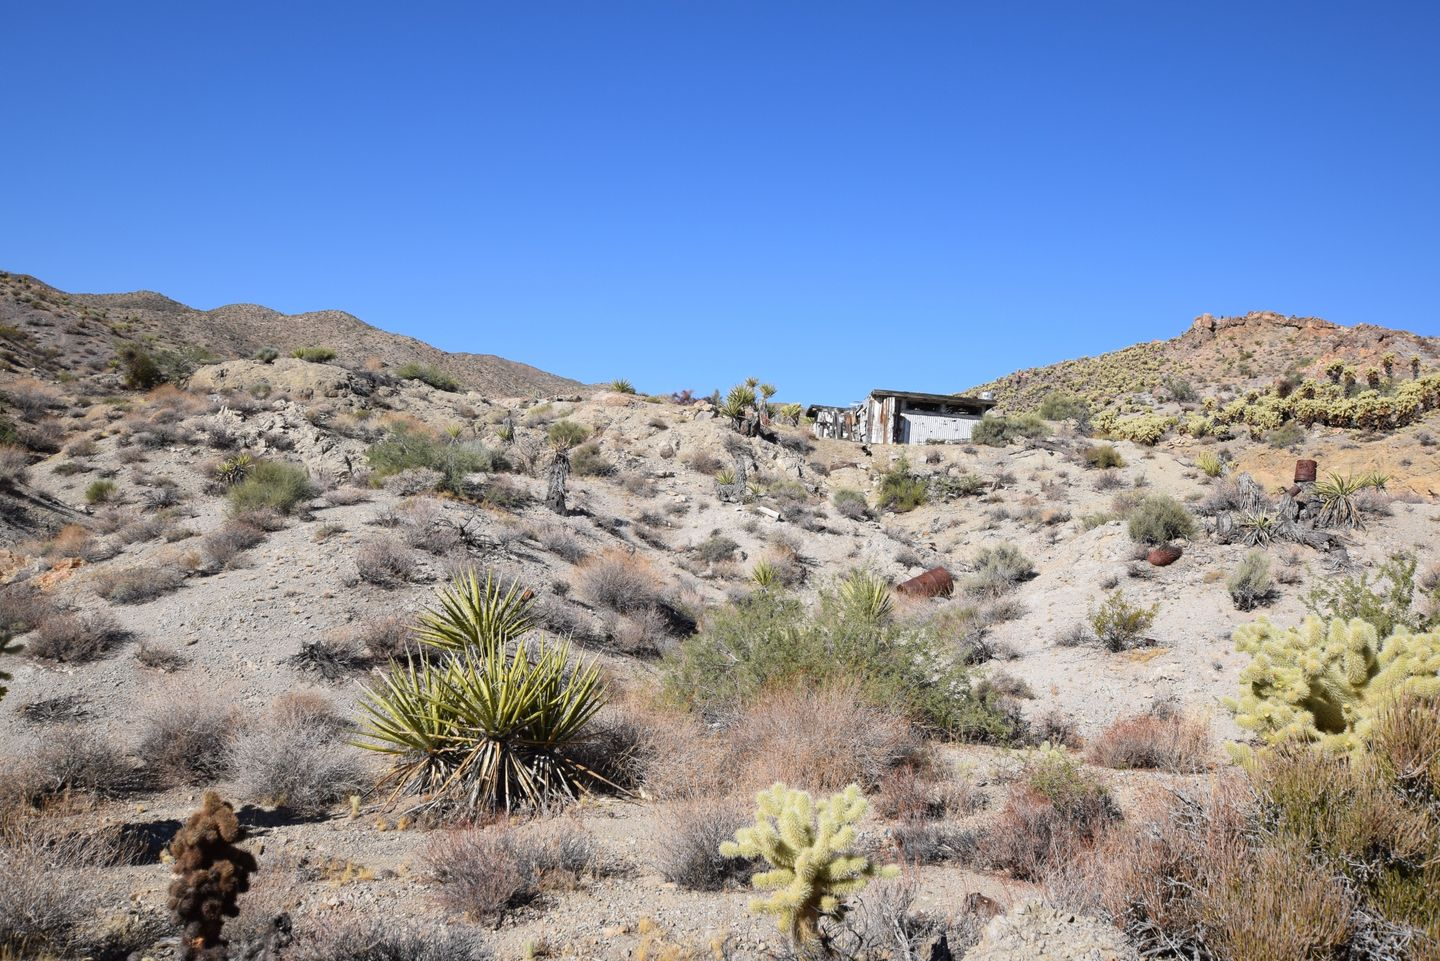 Nelson Goldmine Trail - Waypoint 4: Abandoned Structure